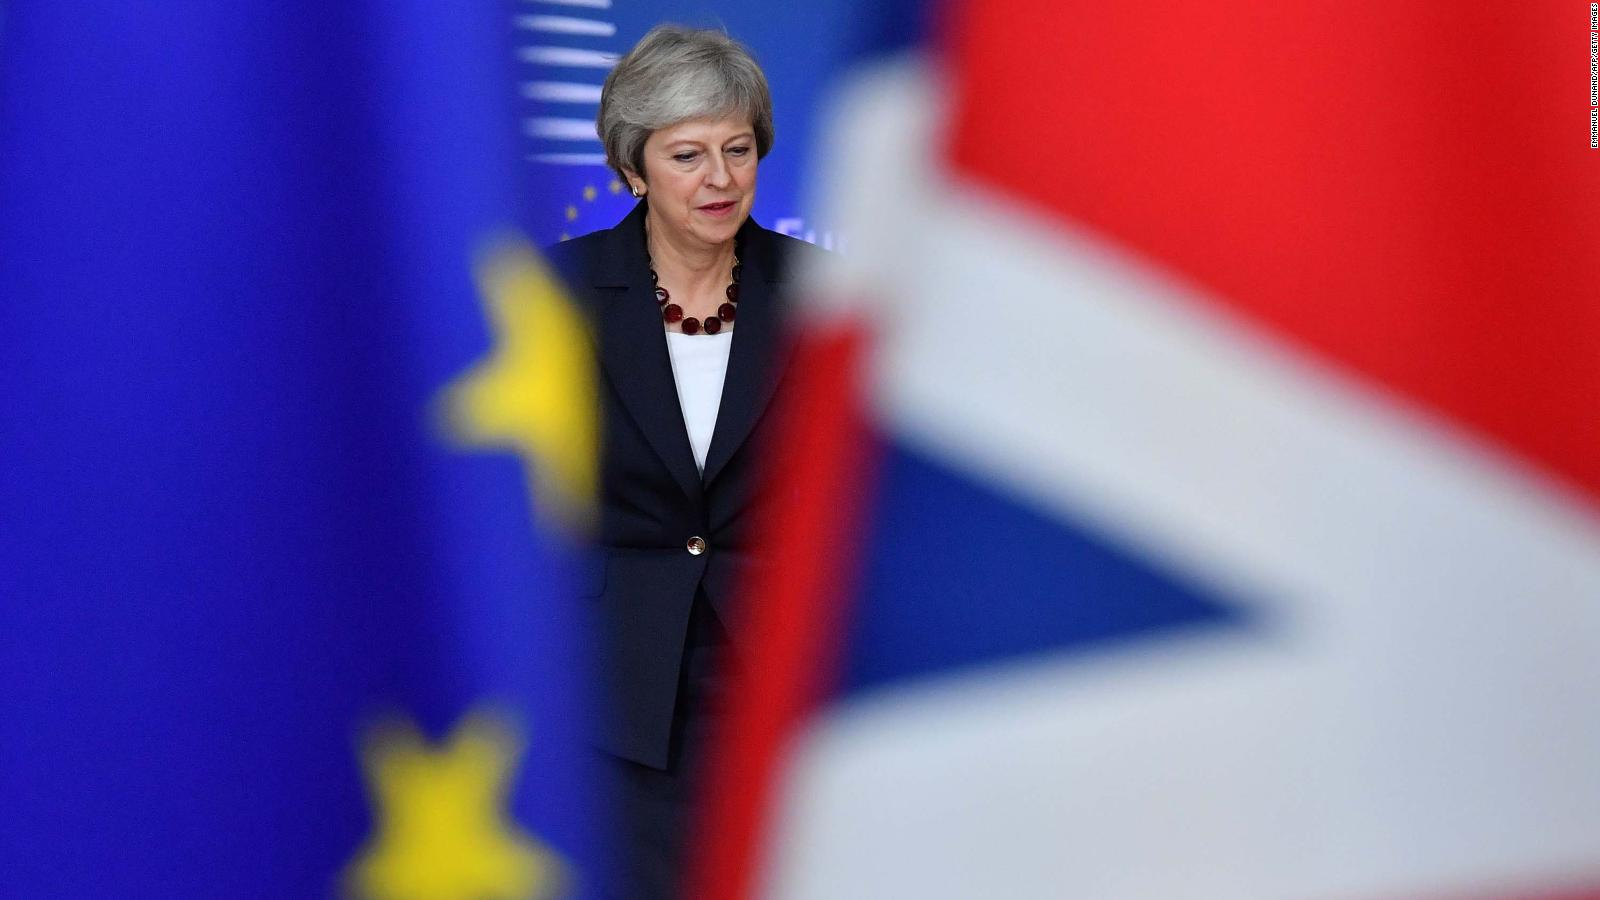 The future of Brexit remains uncertain